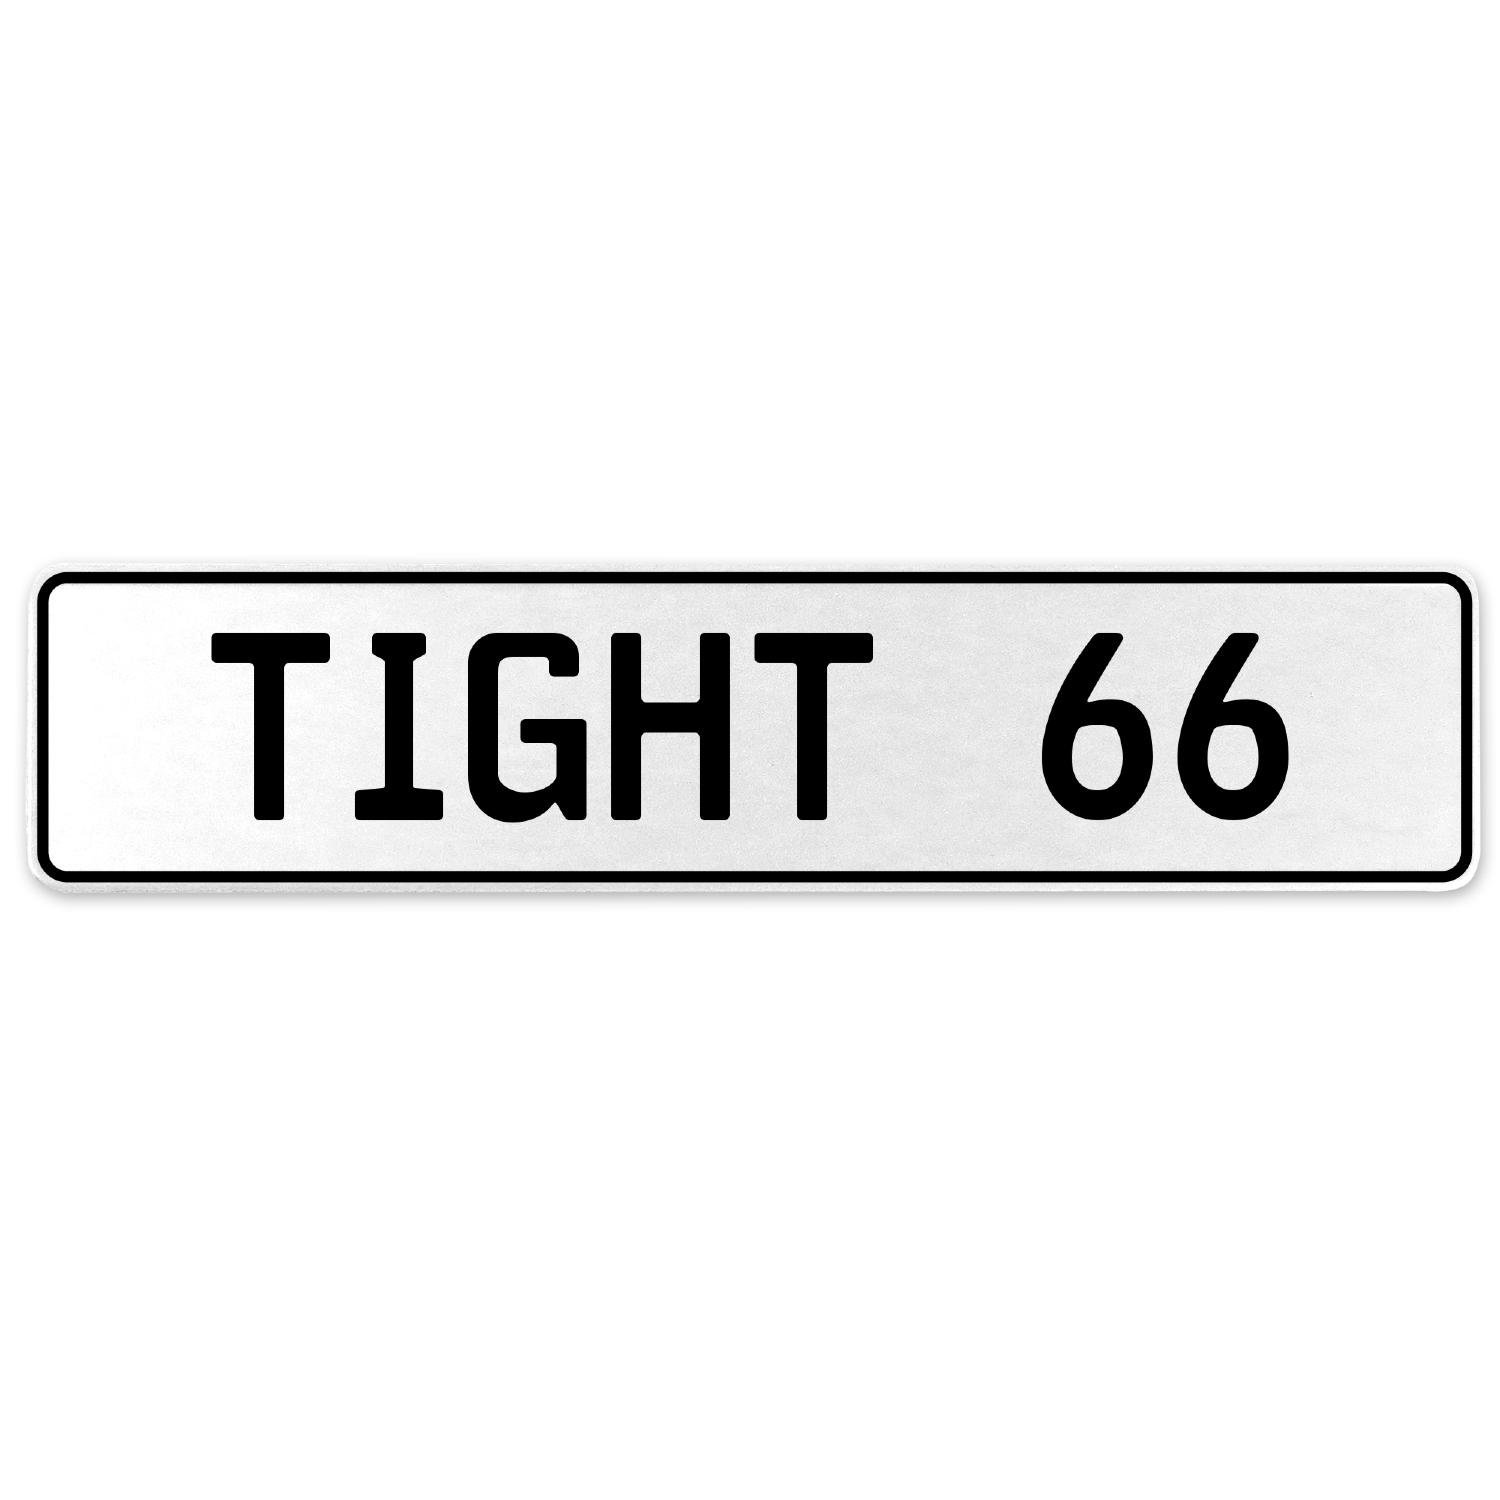 Vintage Parts 554762 Tight 66 White Stamped Aluminum European License Plate